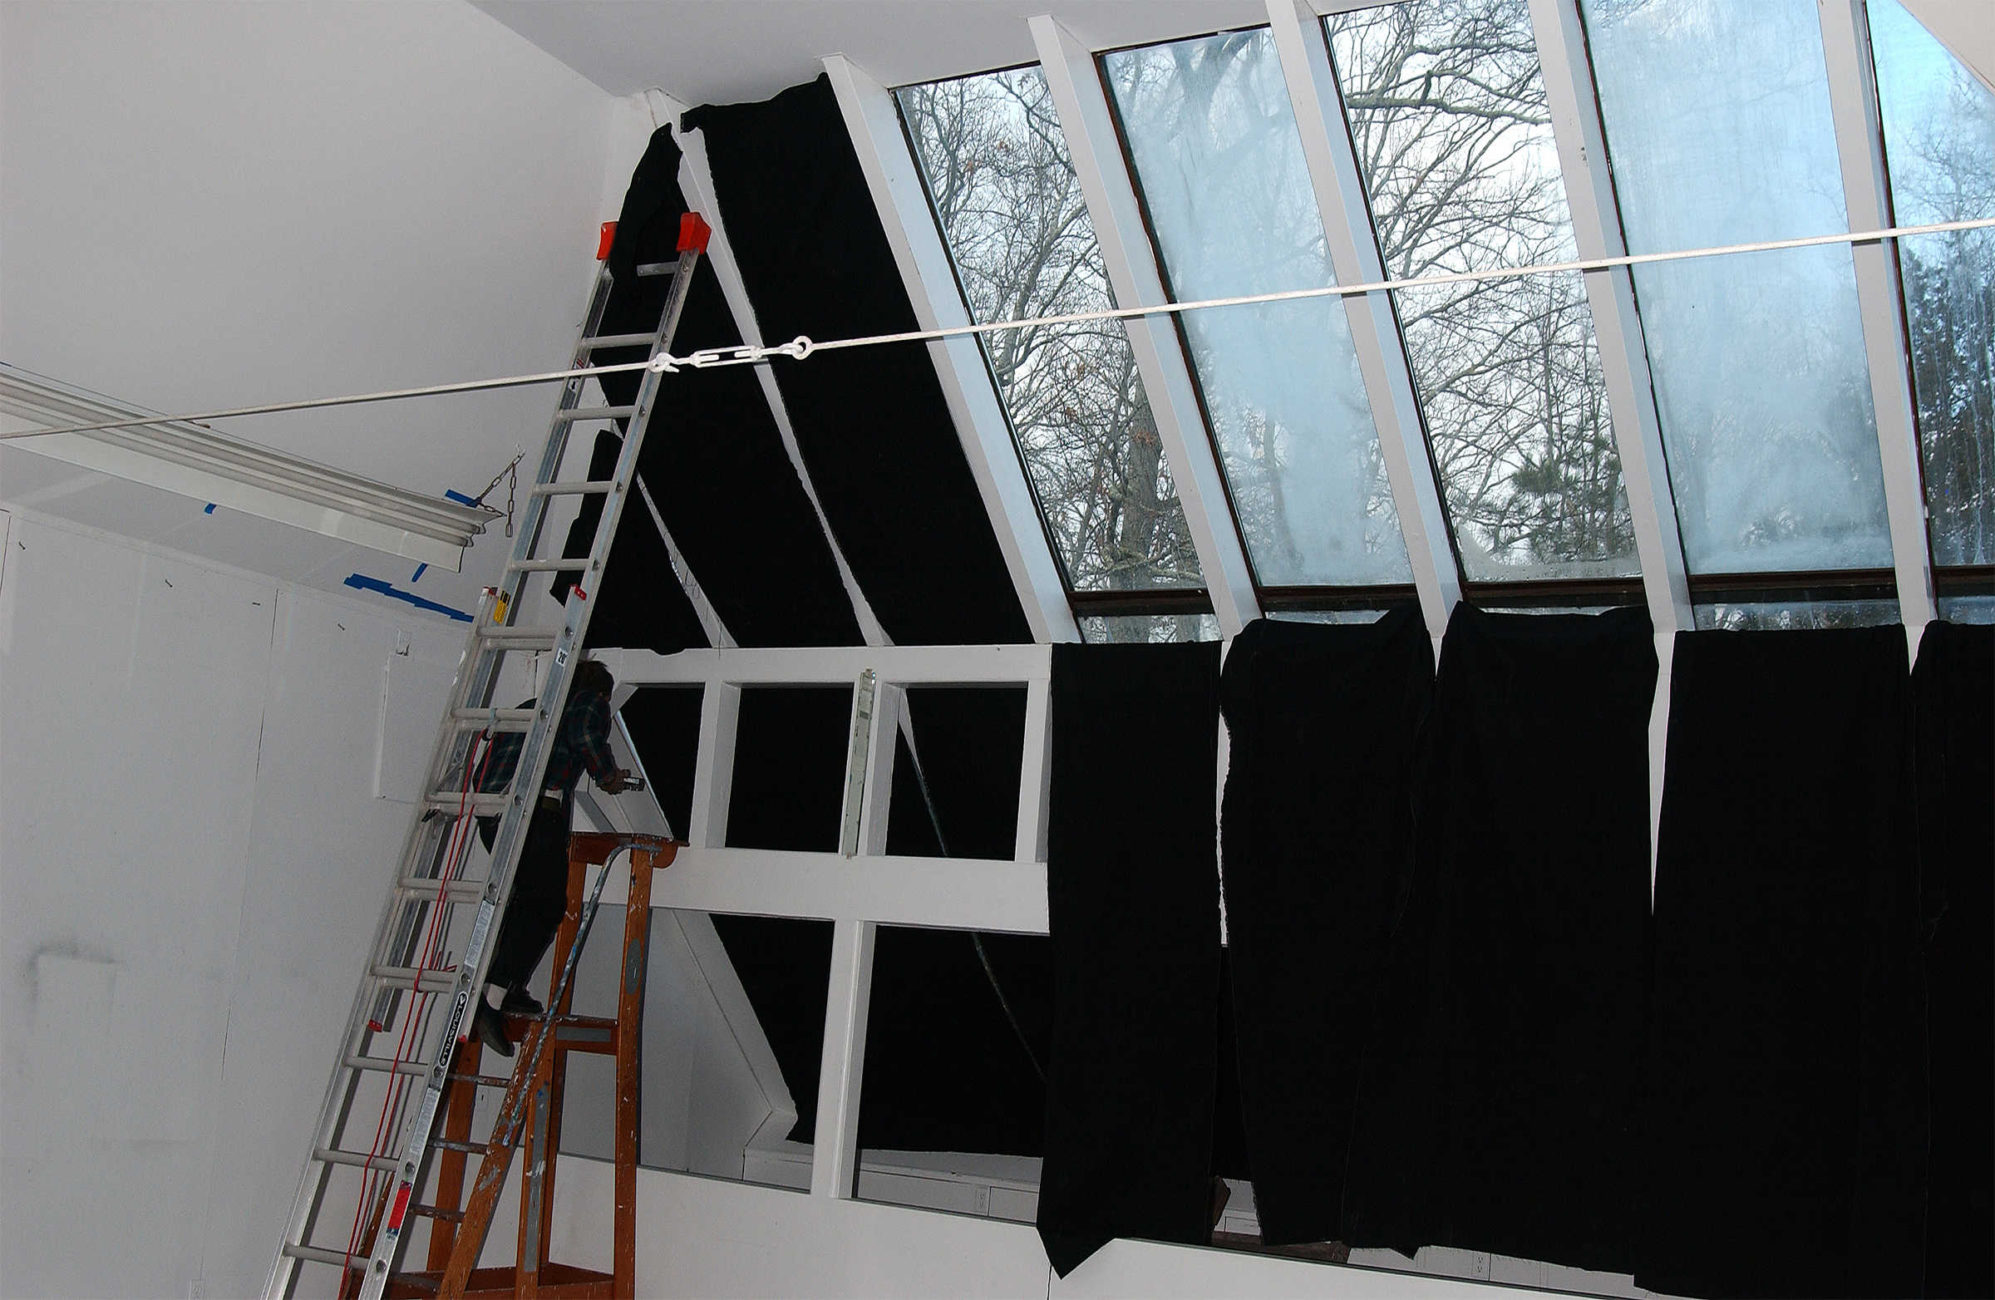 Artist Chris Duncan in residence at the historic and former home and studio of the painter Elaine de Kooning in East Hampton, NY.  The artist  places black cloth on the skylight of the studio to be bleached by the sun for a duration of four months. This effect is similar to that of a sungram or a solar etching.